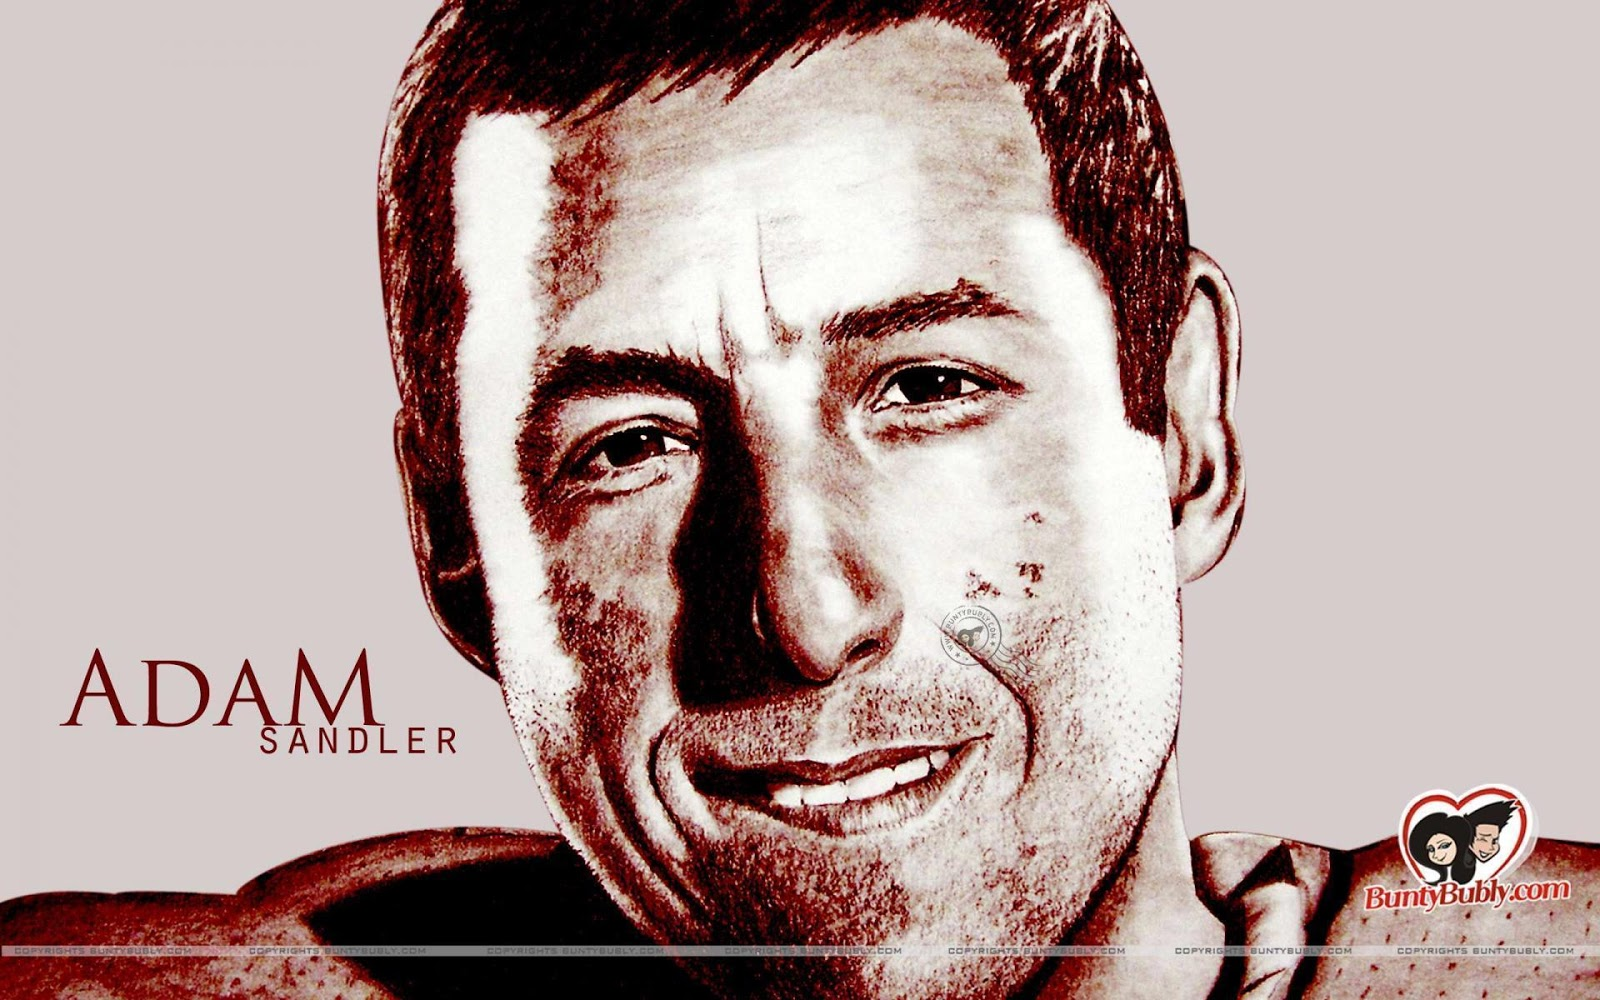 Adam Sandler Wallpapers, Amazing Adam Sandler Wallpapers